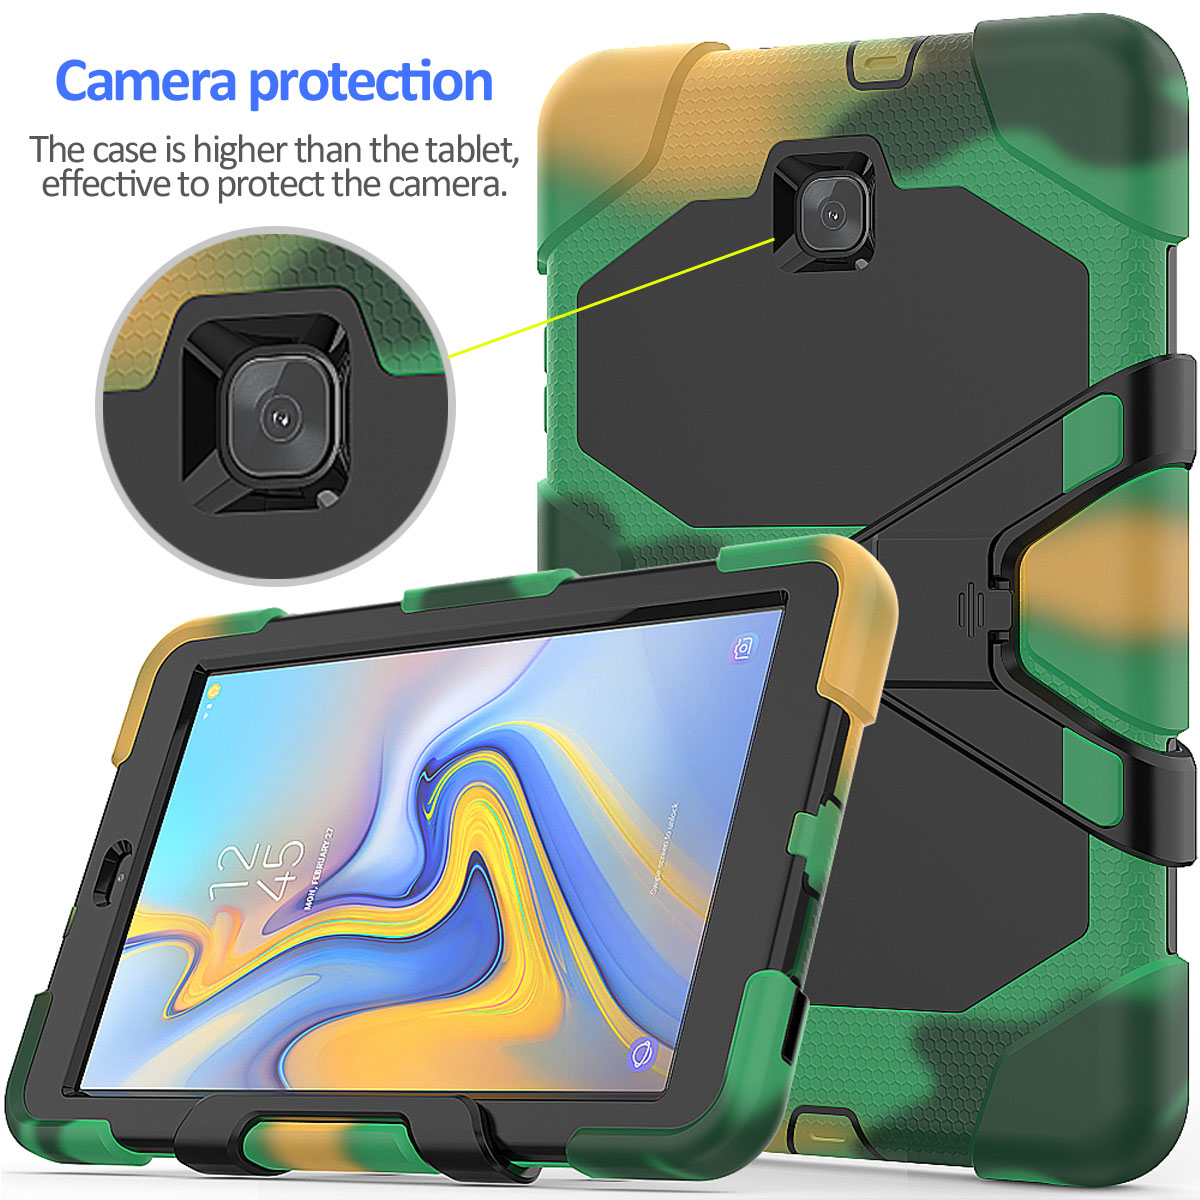 Rugged-Hard-Case-For-Samsung-Galaxy-Tab-A-8-0-2018-SM-T387-with-Screen-Protector thumbnail 23